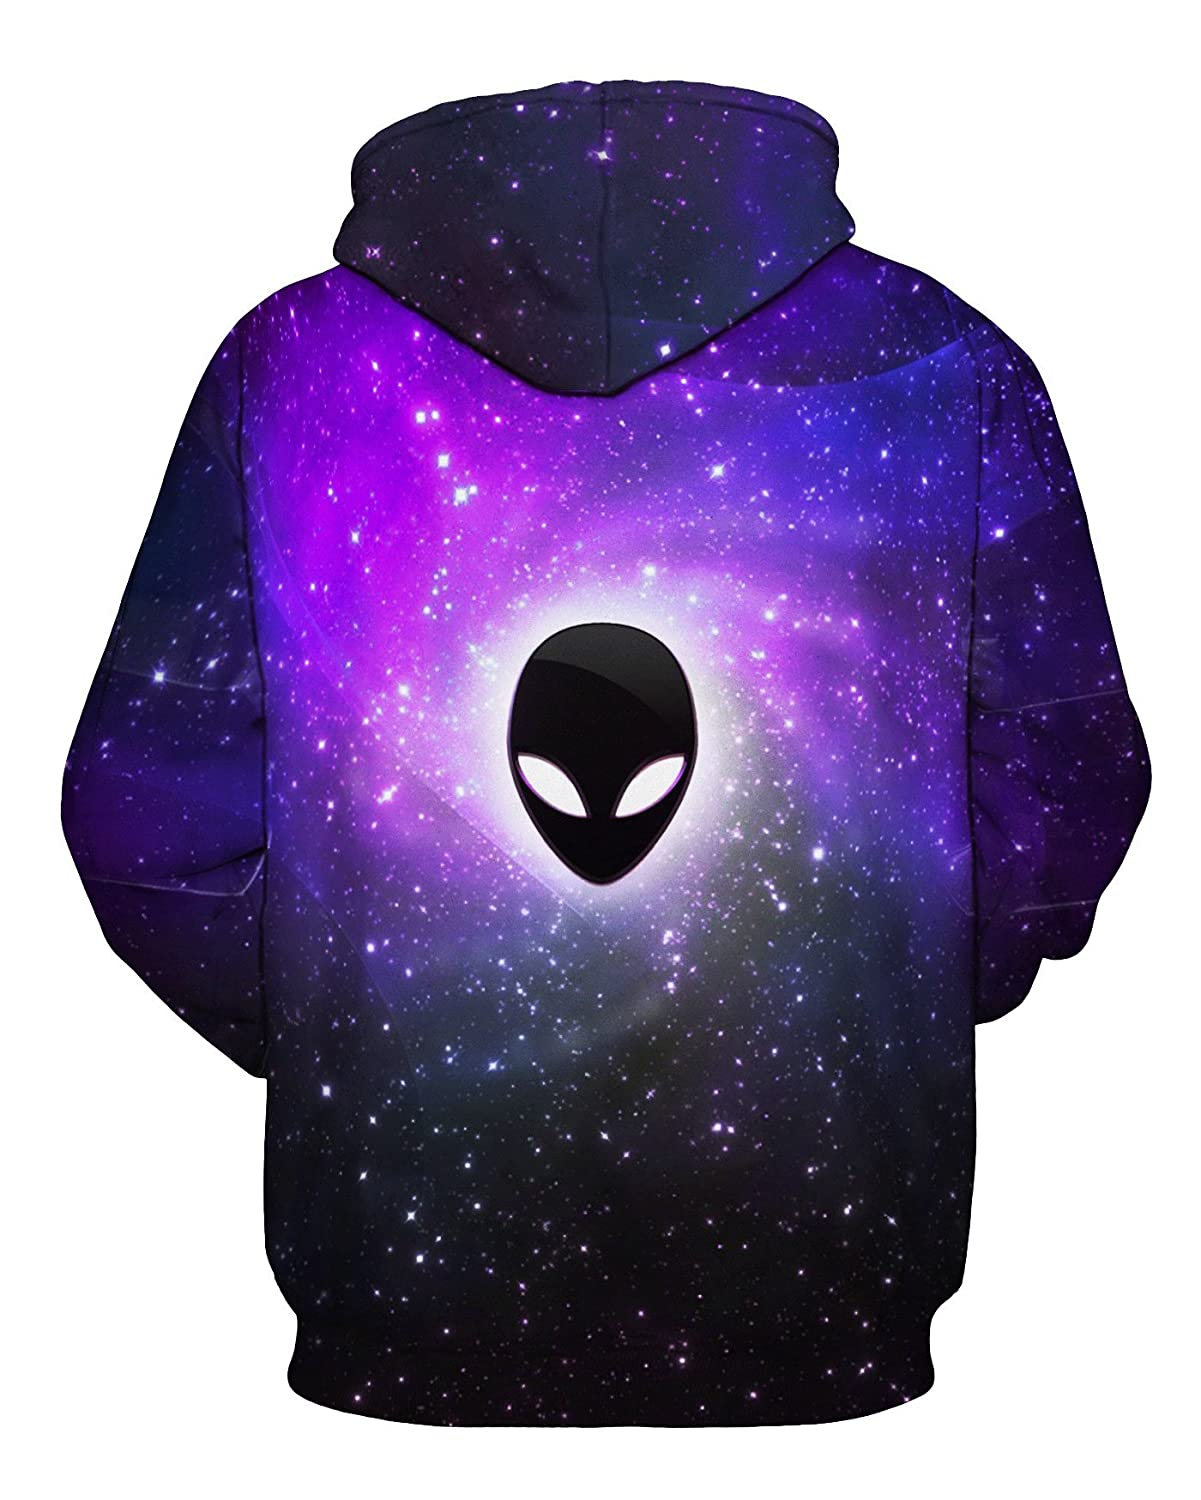 103dc79a2a87 GLUDEAR Unisex Realistic 3D Digital Print Pullover Hoodie Hooded Sweatshirt  at Amazon Women s Clothing store